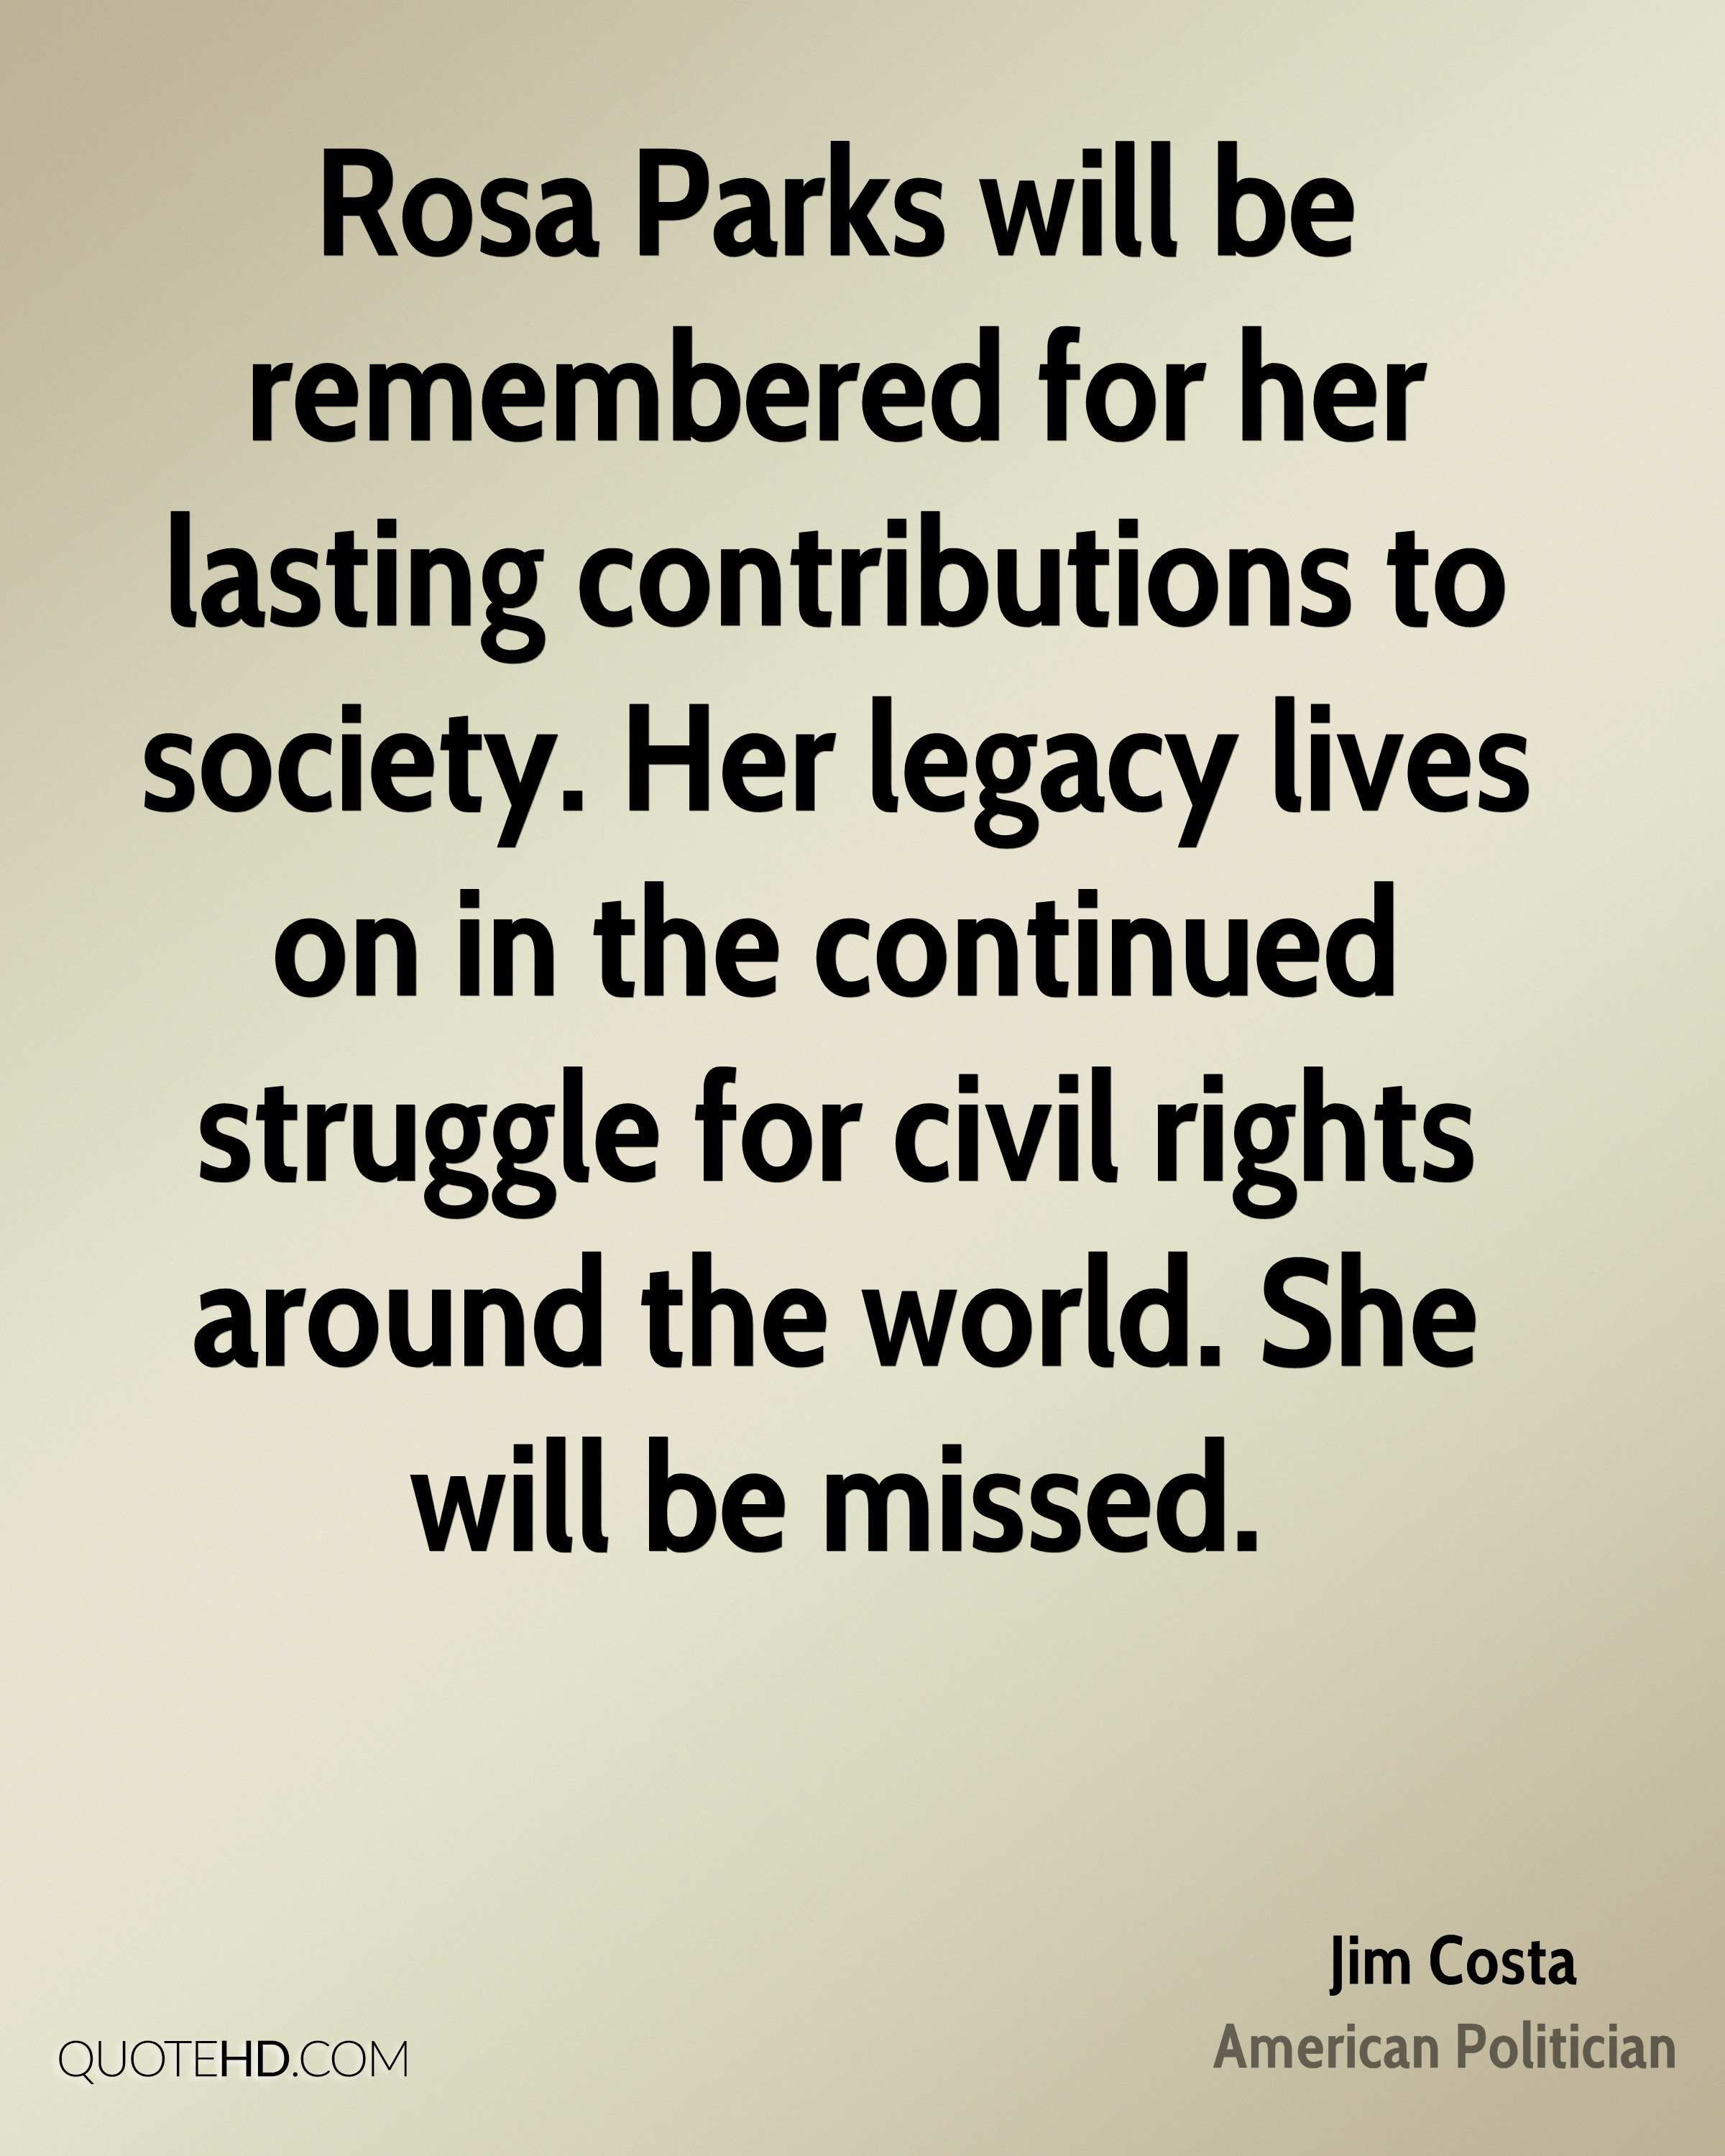 Rosa Parks will be remembered for her lasting contributions to society. Her legacy lives on in the continued struggle for civil rights around the world. She will be missed.